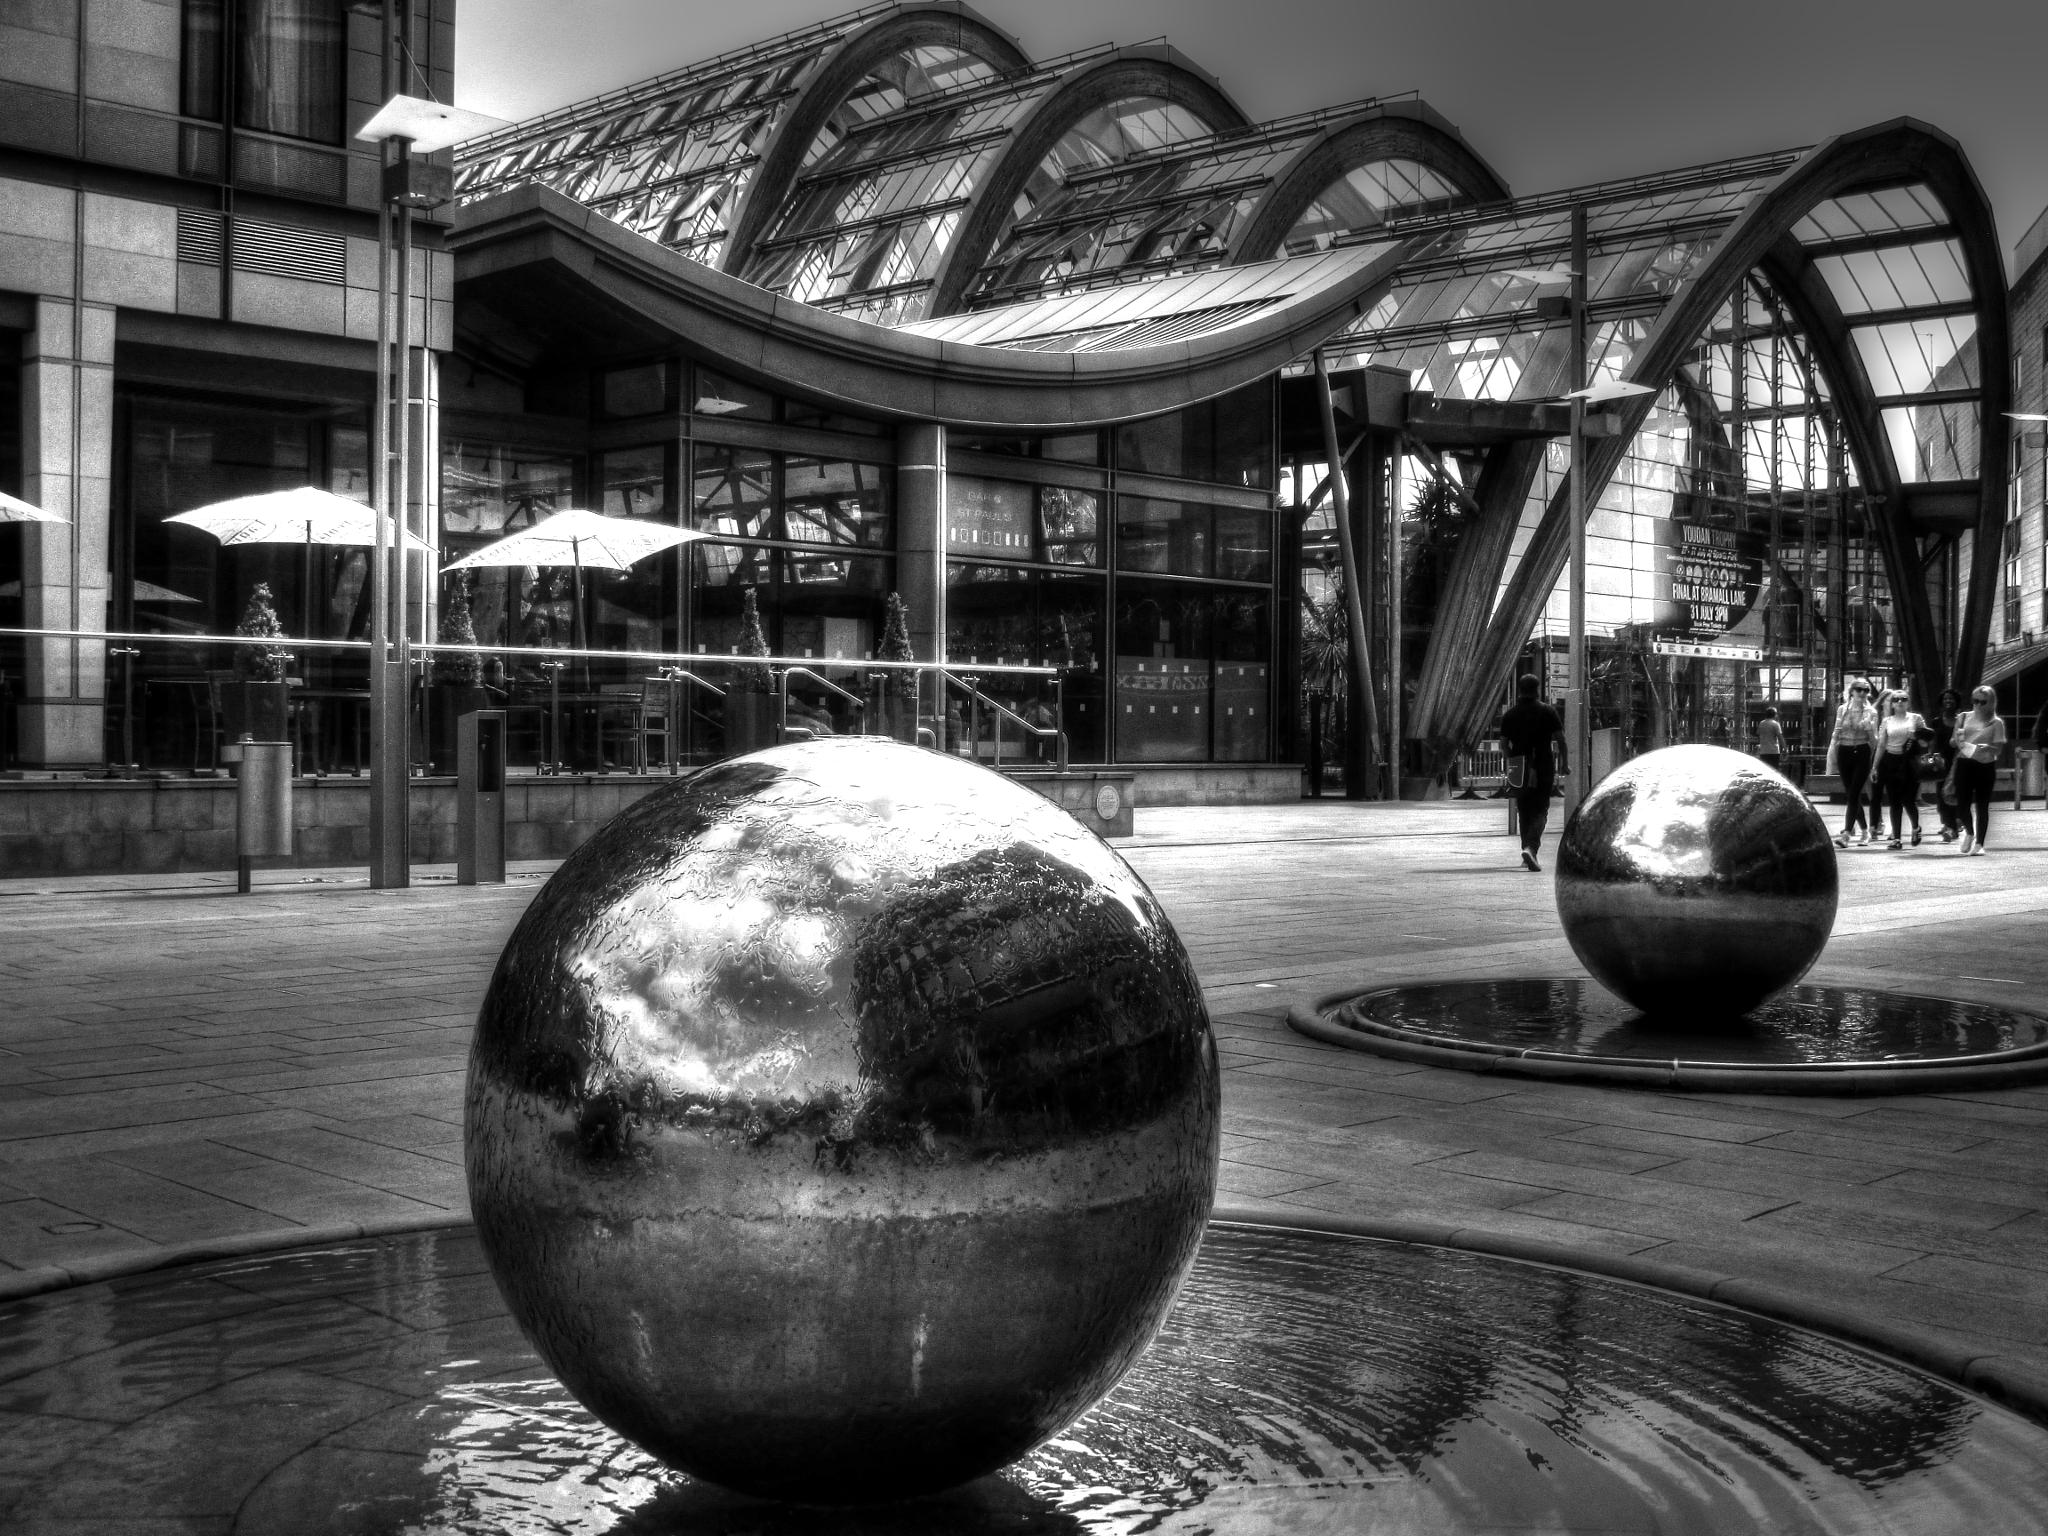 outside the winter gardens by steve simpson